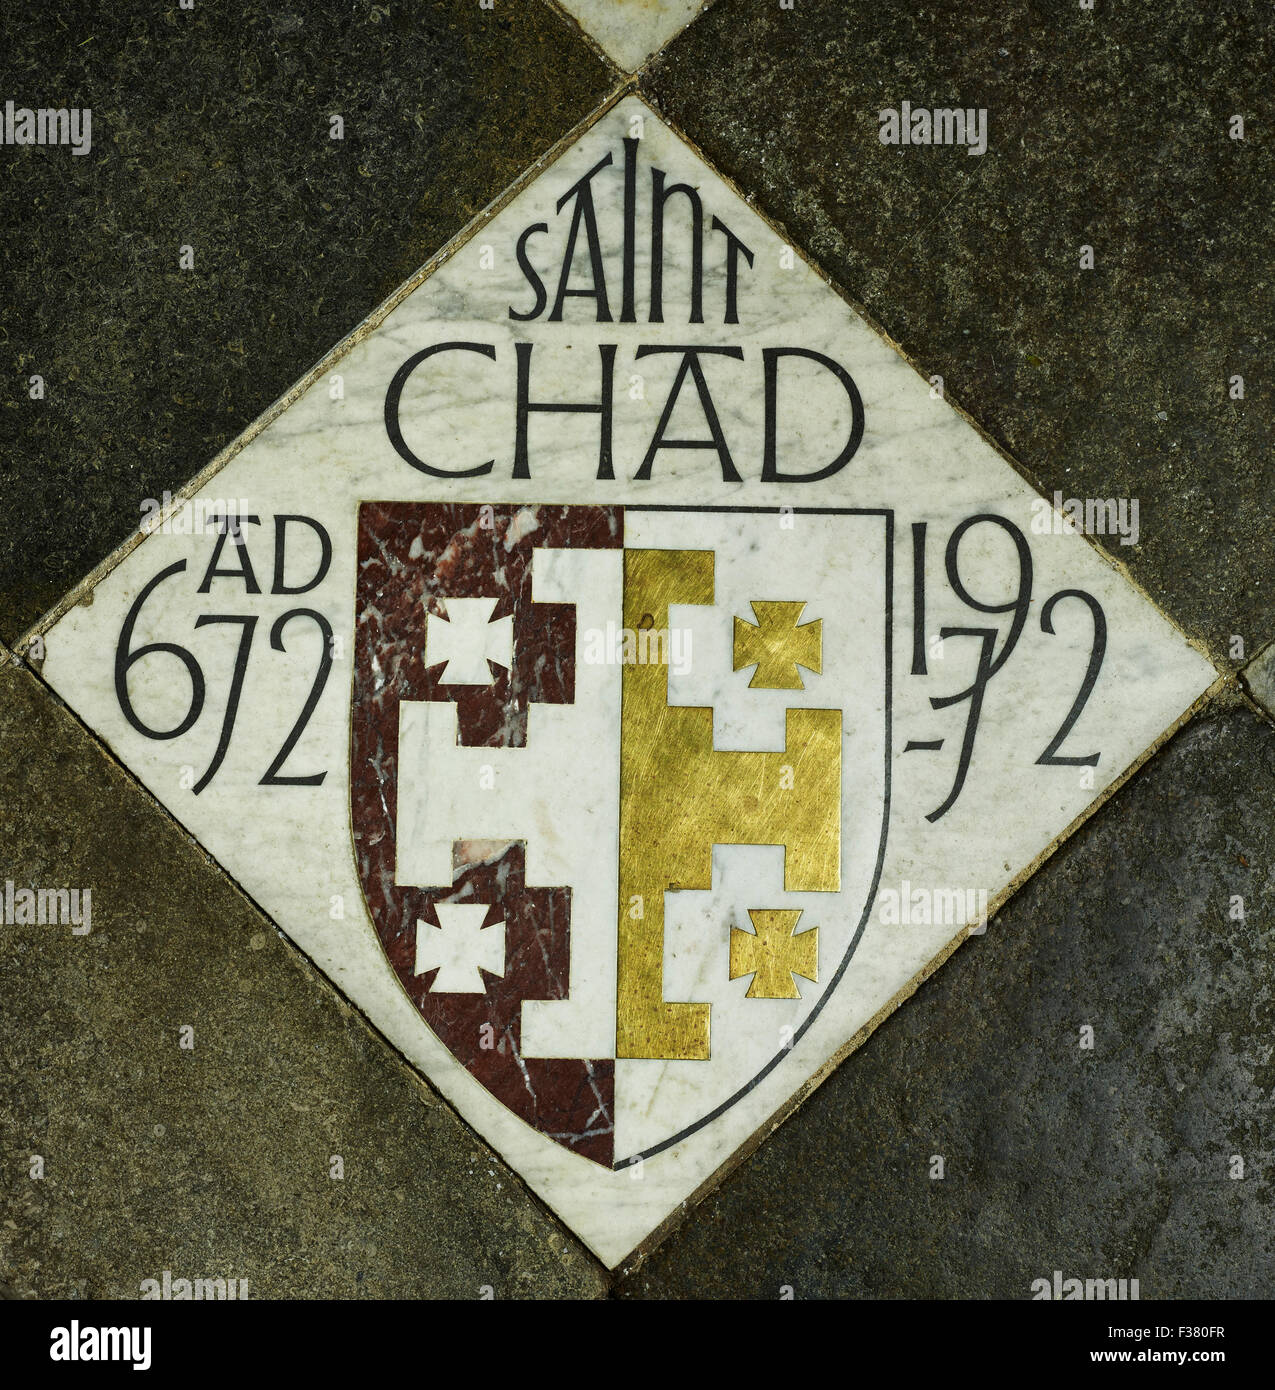 Lichfield Cathedral, St Chad tile Immagini Stock